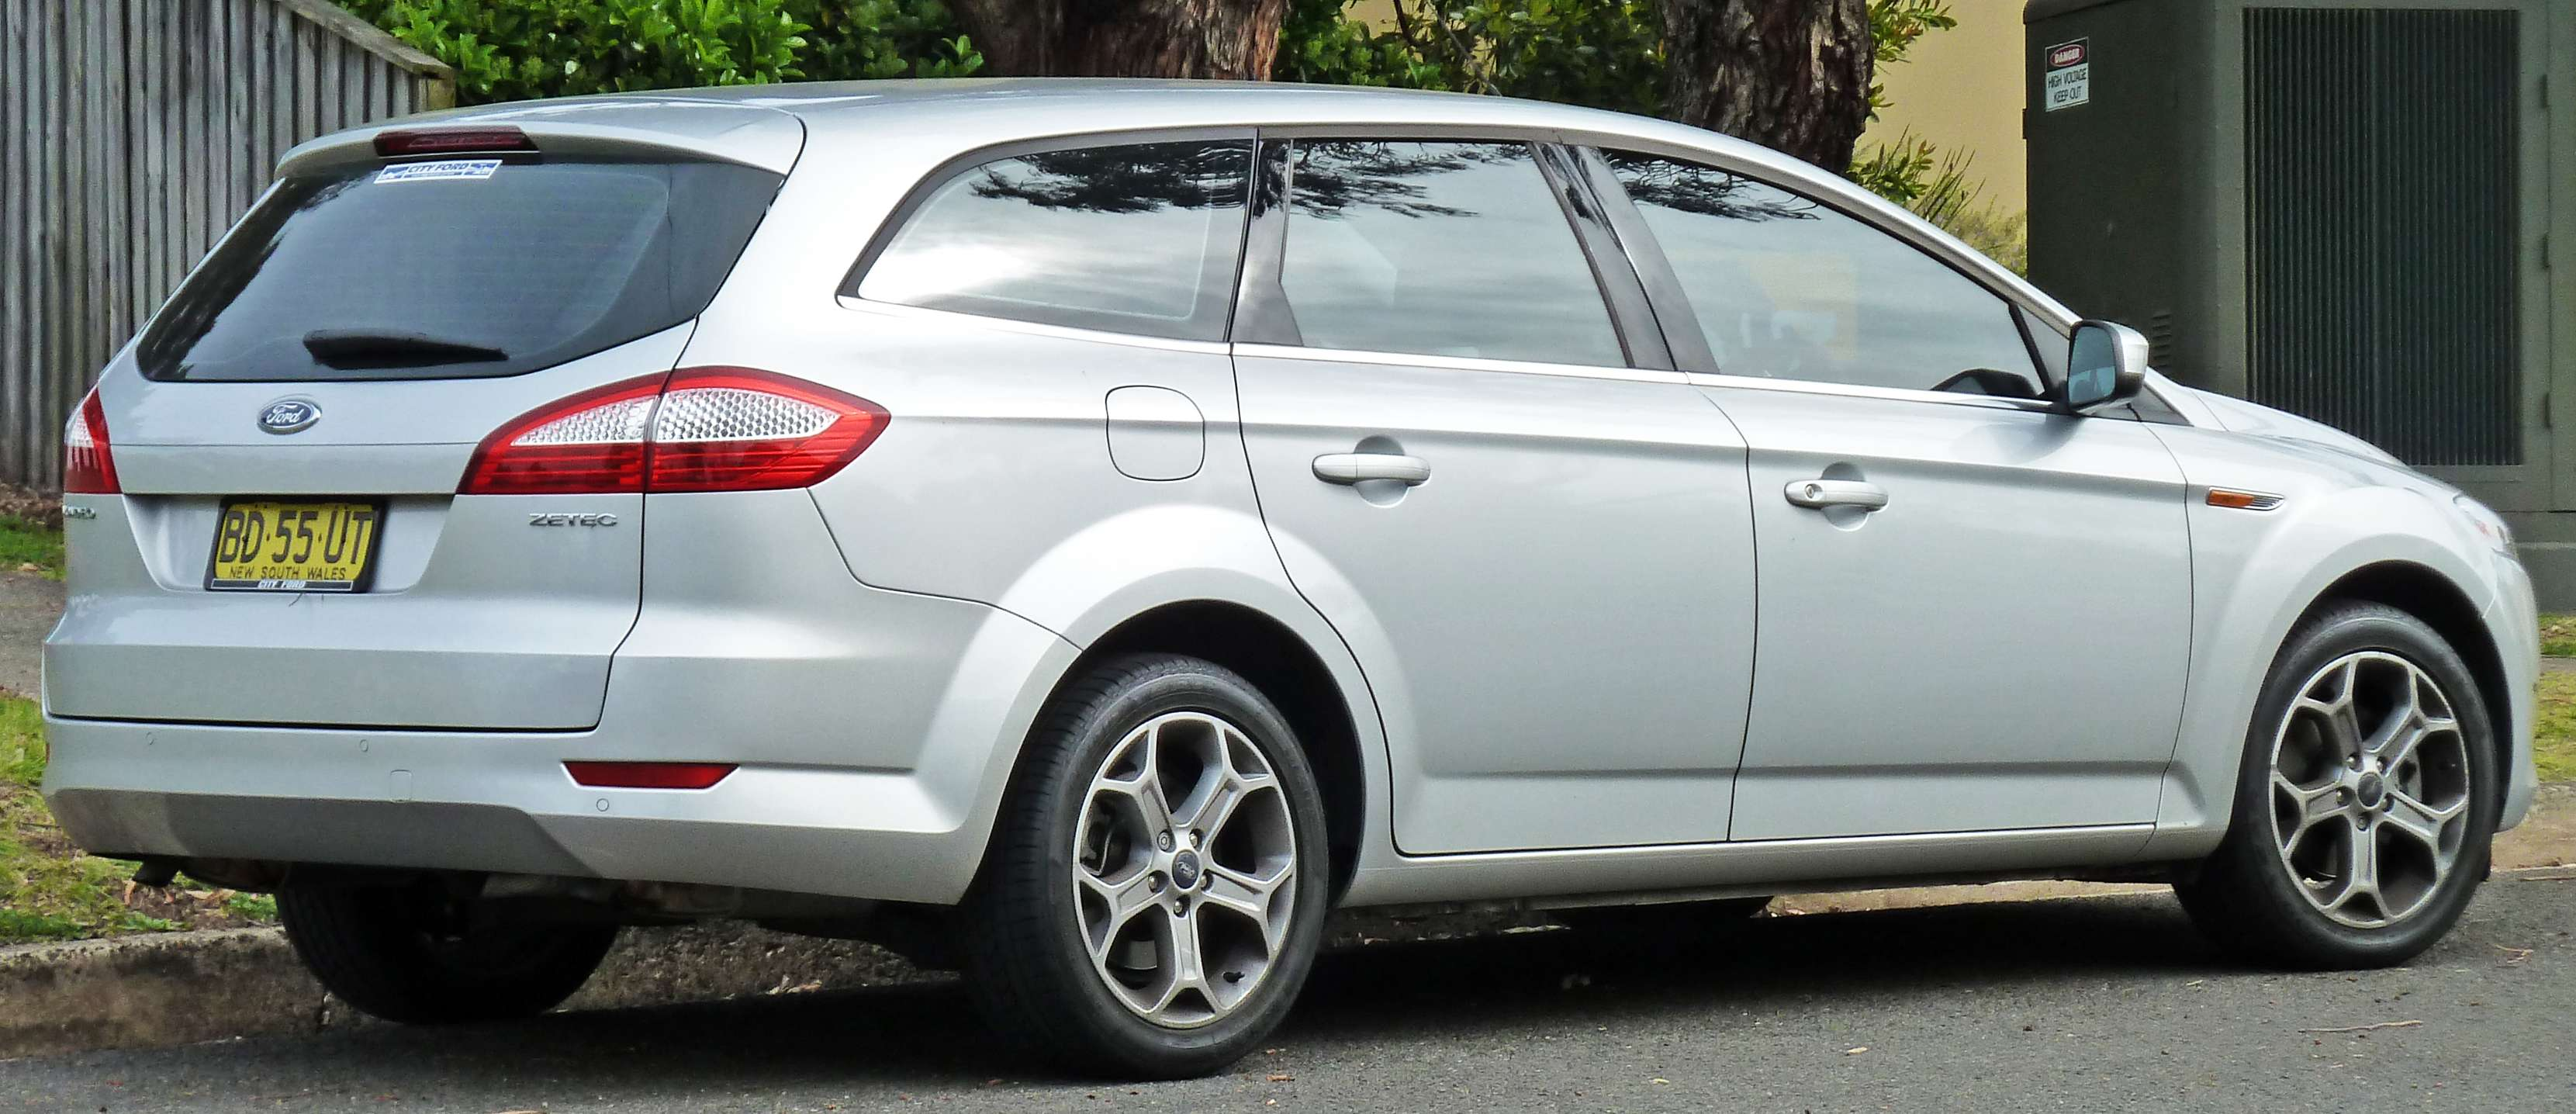 Ford Mondeo Wagon #8607839